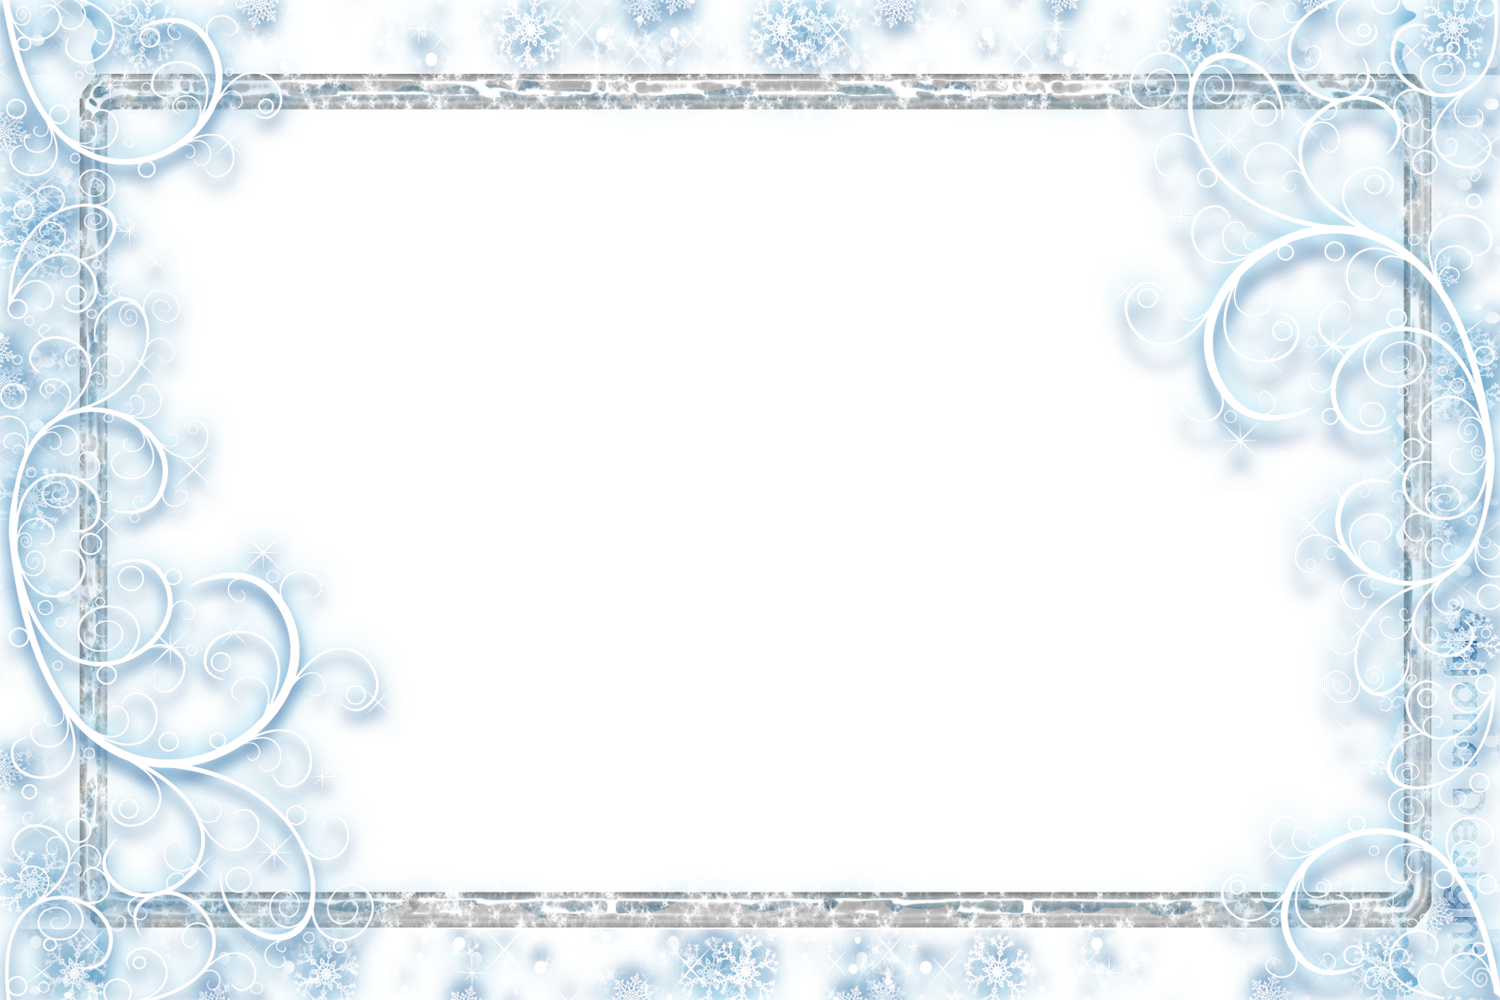 Snowflakes Falling Png Frame 34479 Free Icons And Png